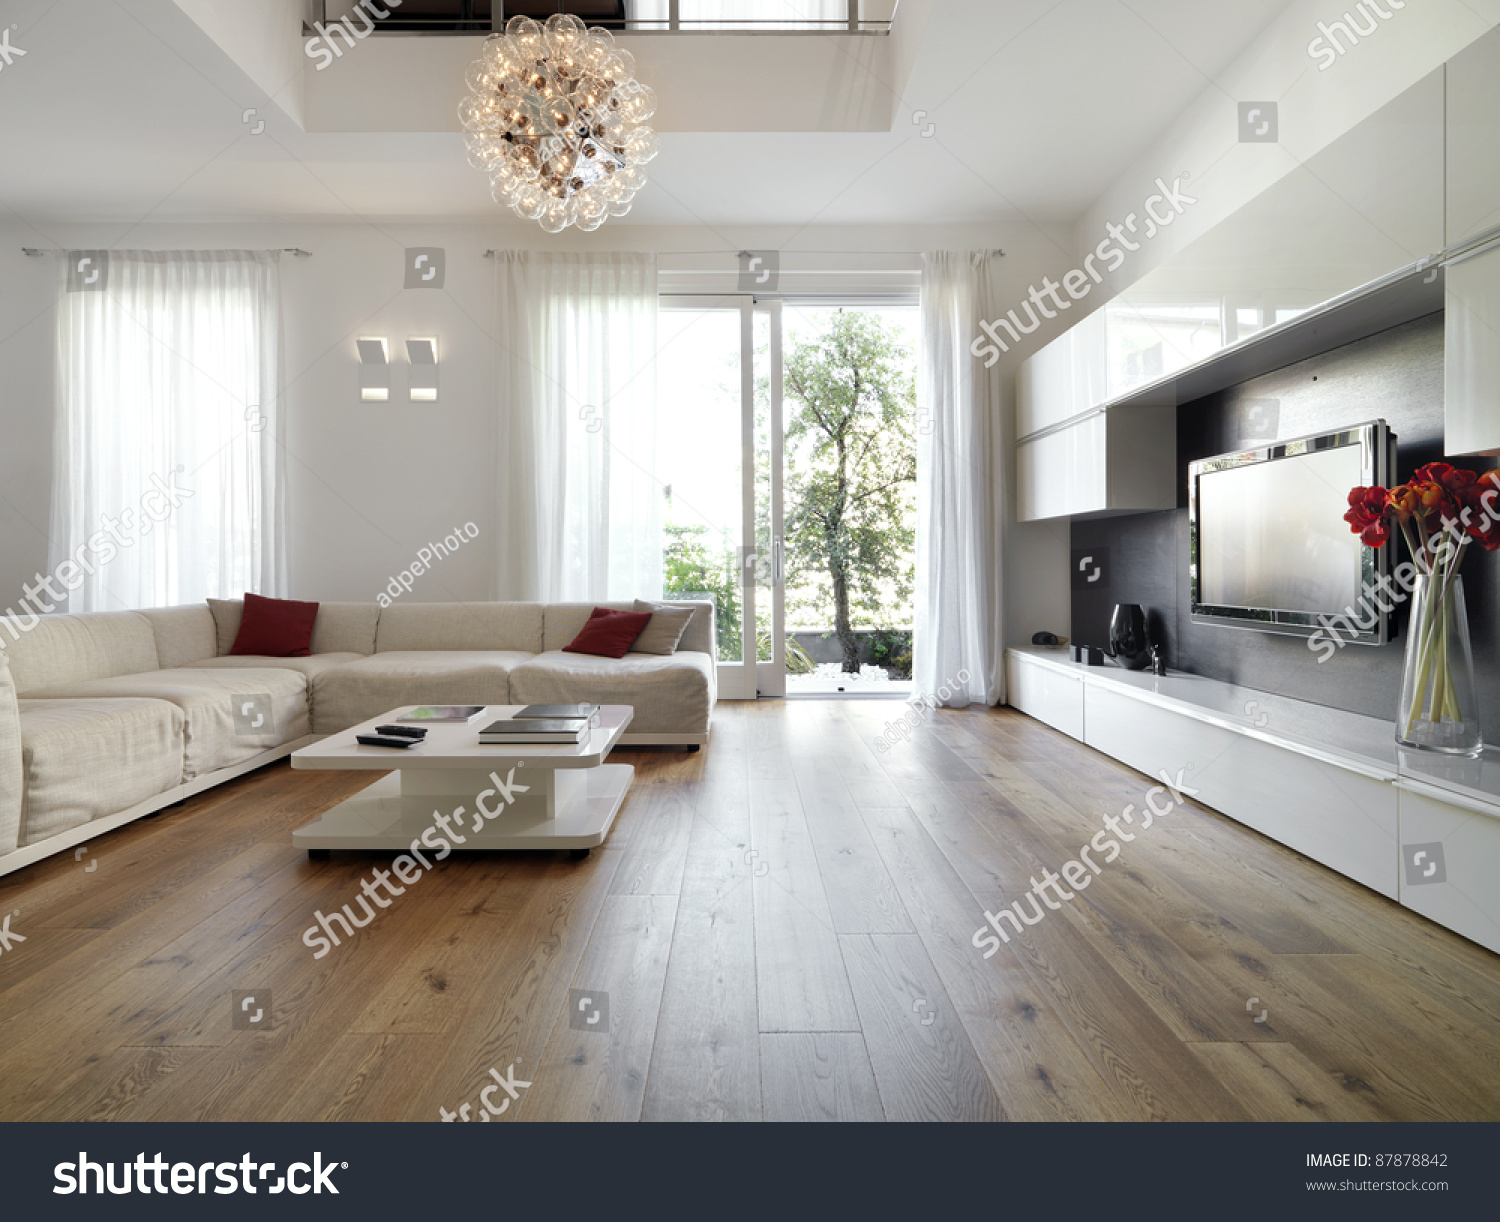 Internal View Of A Modern Living Room With Wood Flooring Overlooking On The  Garden Part 78